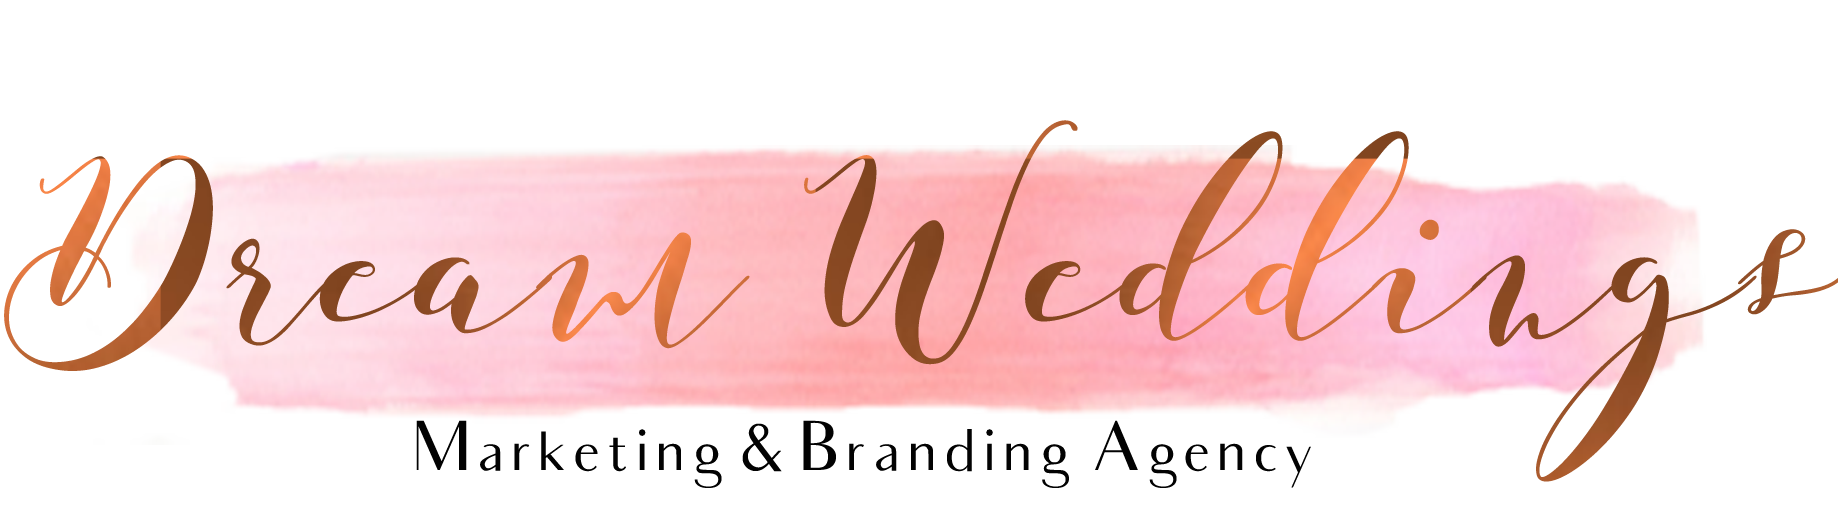 Wedding Industry Marketing & Branding